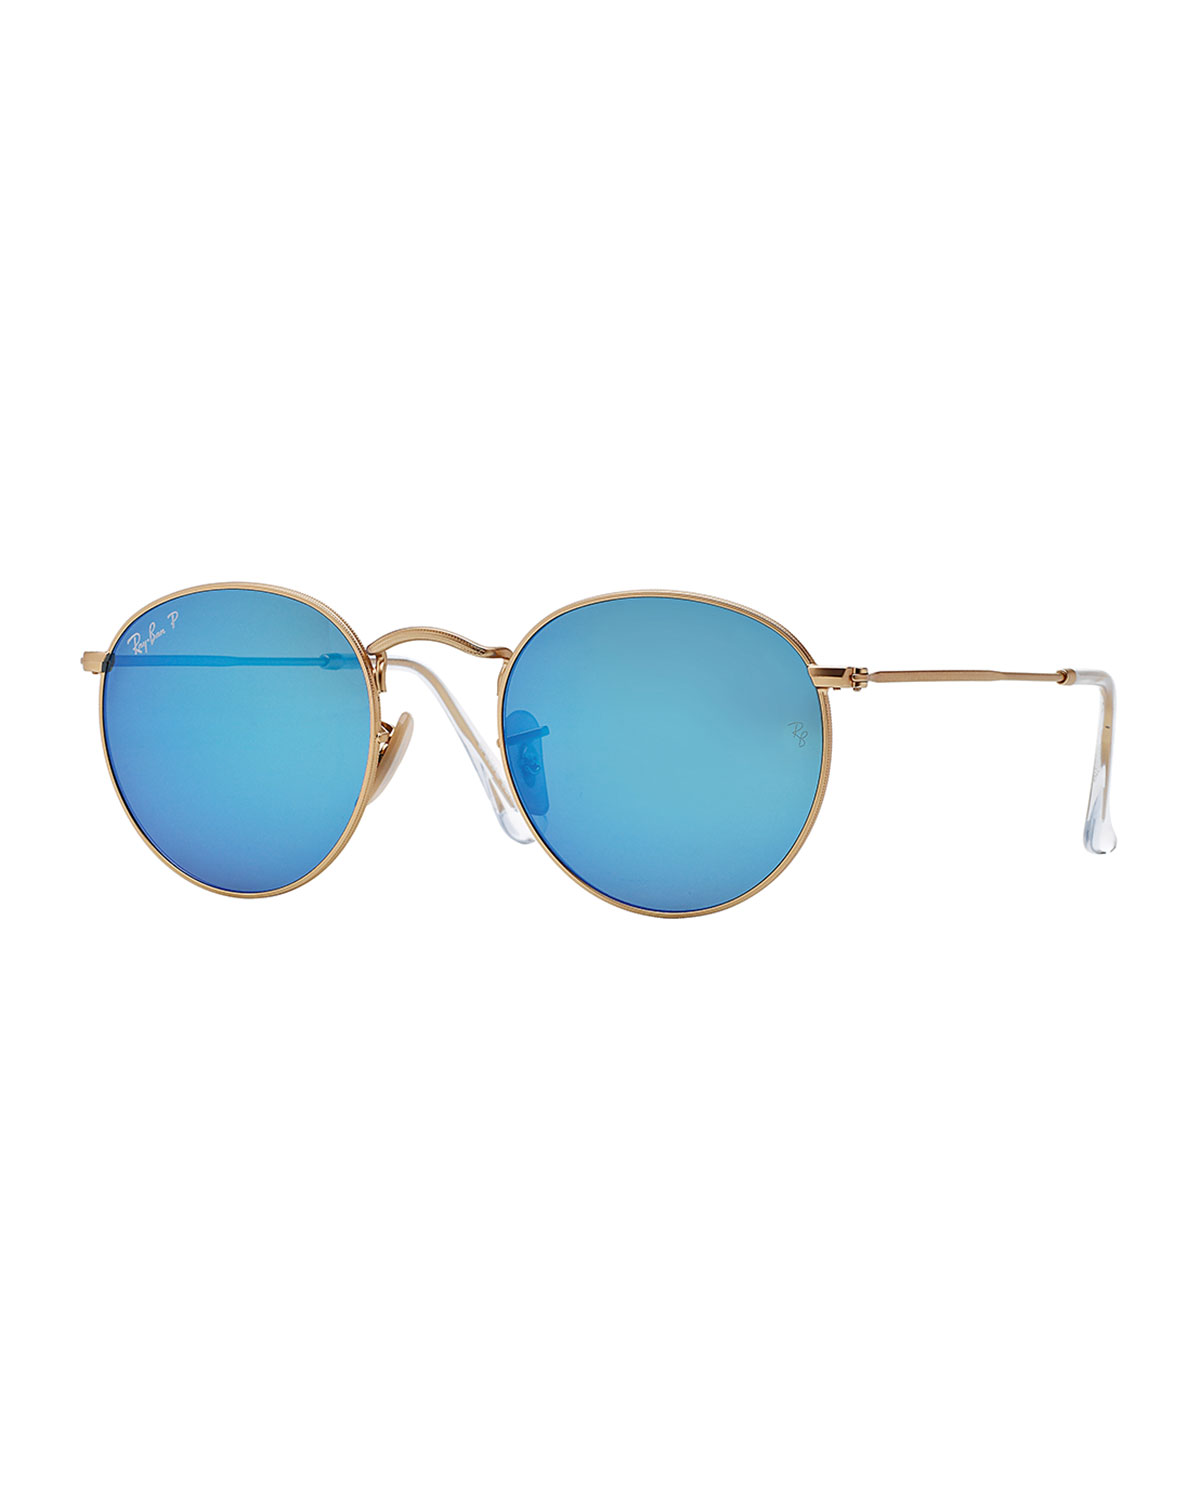 Ray Ban Polarized Round Metal Frame Sunglasses With Blue Mirror Lens